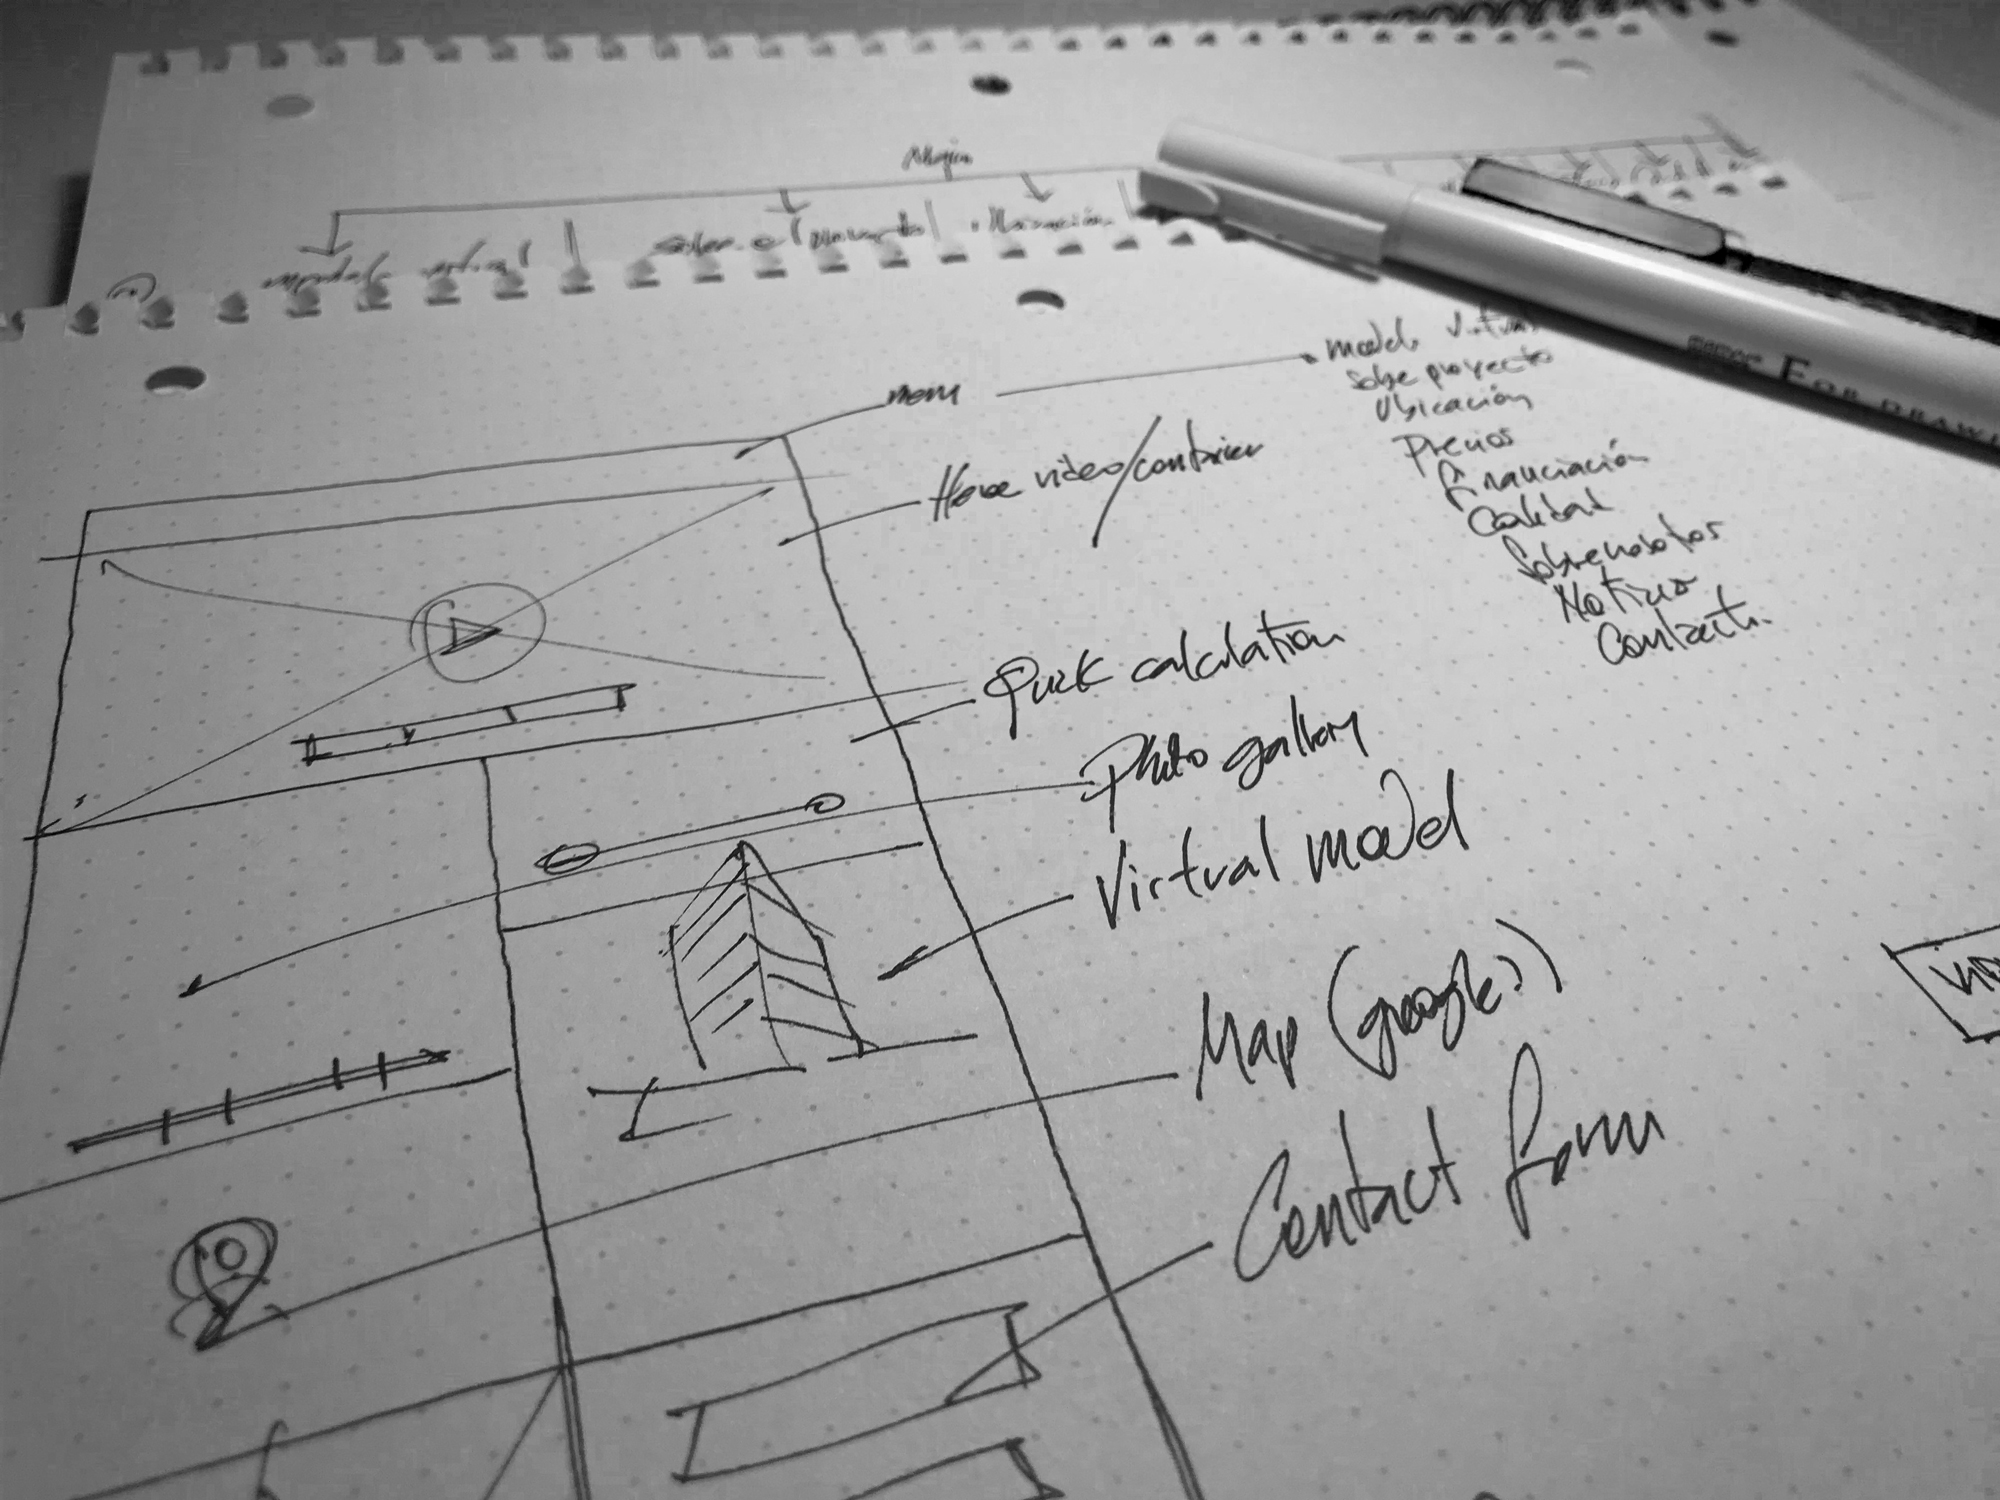 Content structure & wireframes